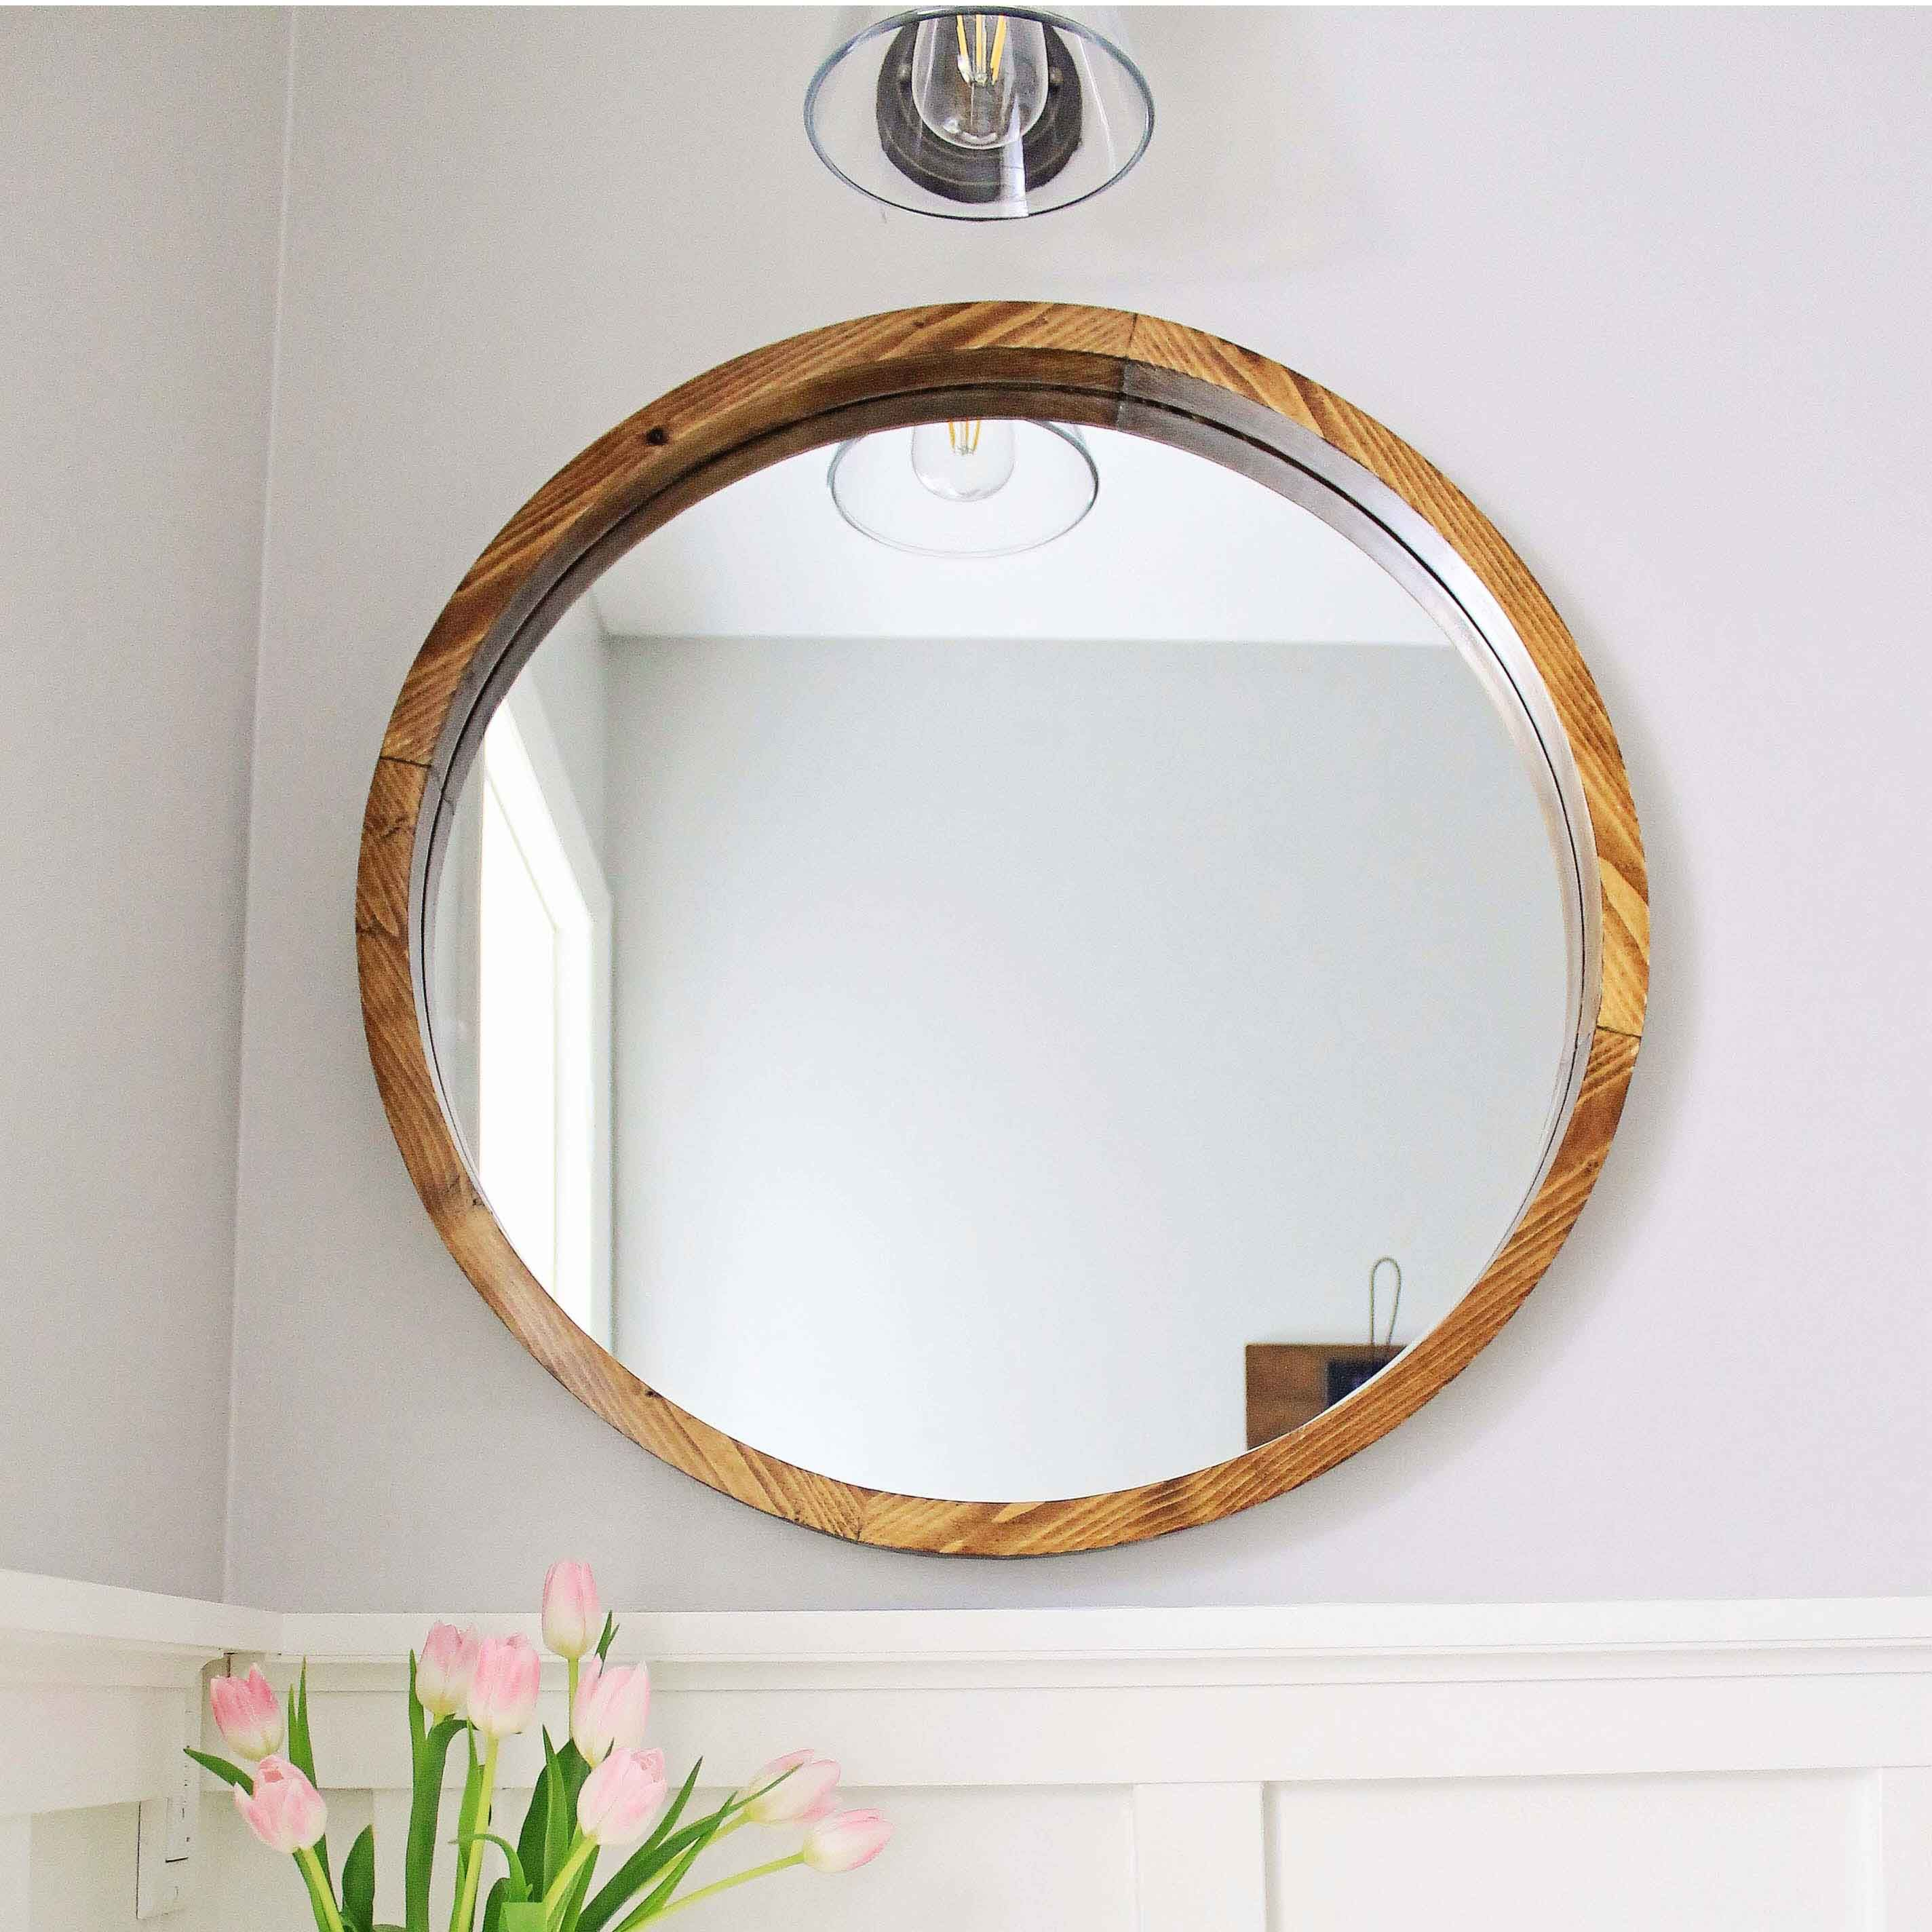 Round Wood Mirror Diy Round Wood Mirror Diy Mirror Wood Framed